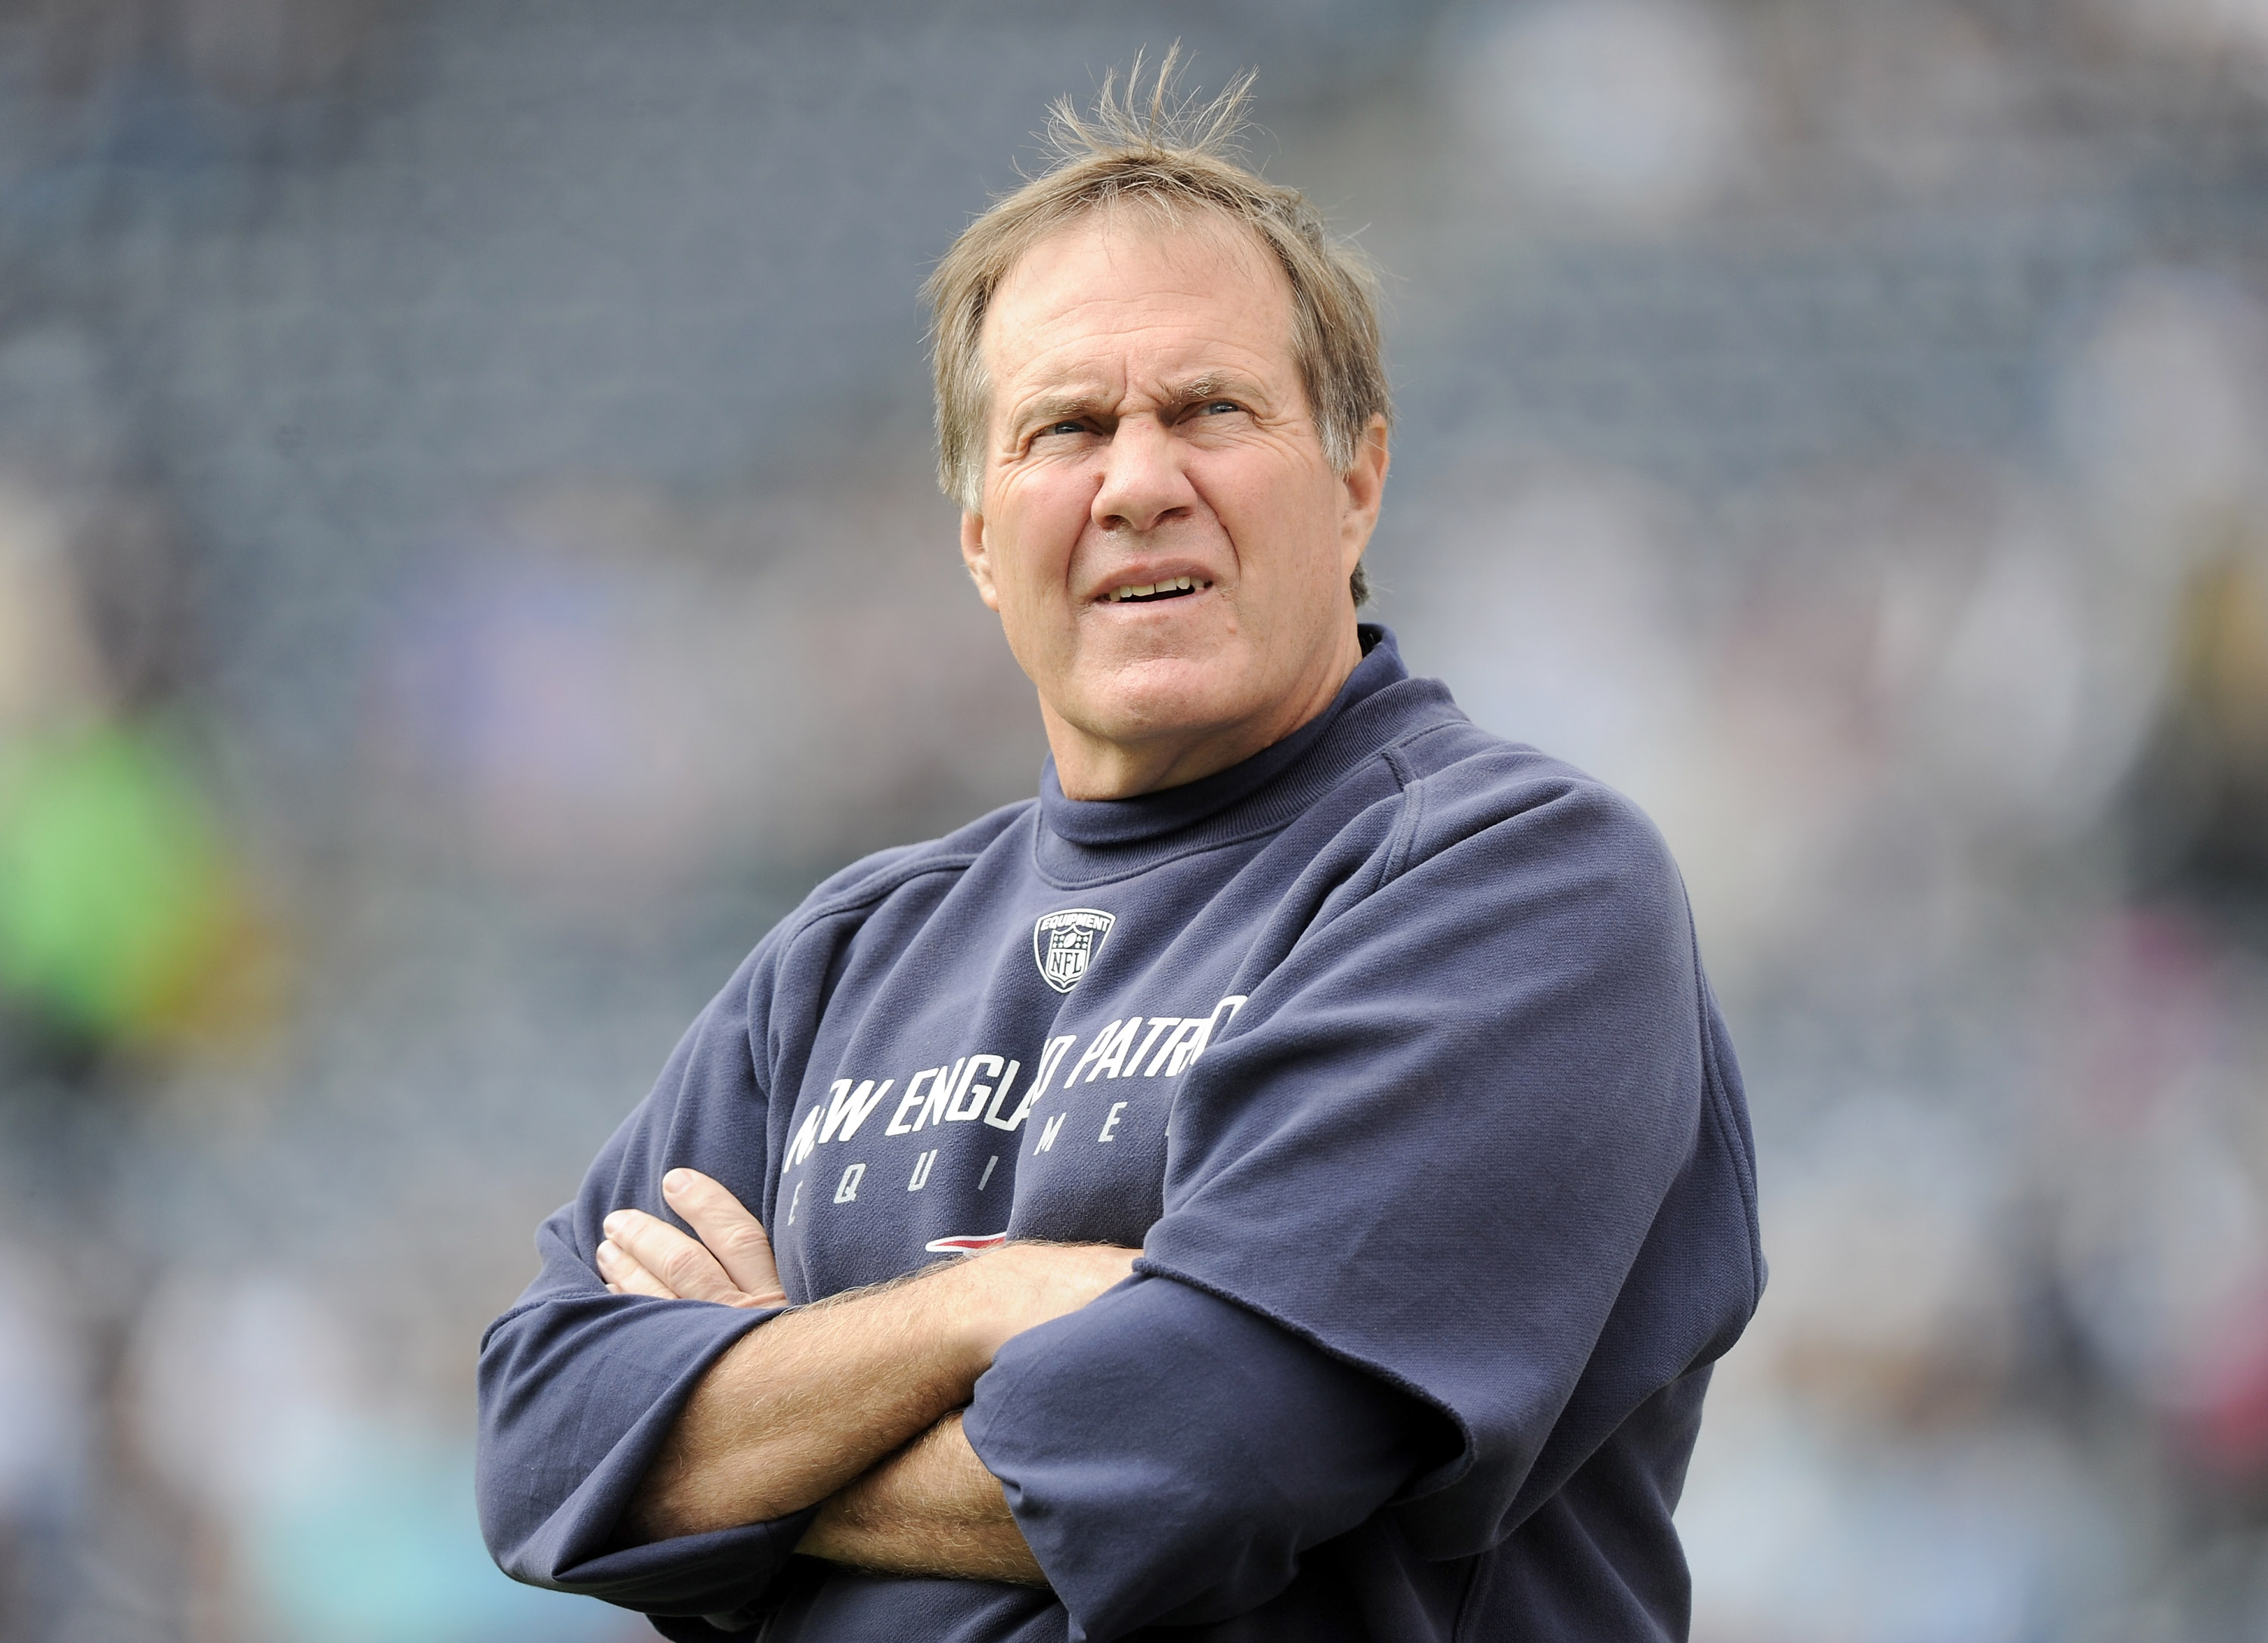 SAN DIEGO - OCTOBER 24:  Head Coach Bill Belichick of the New England Patriots during warm up against the San Diego Chargers at Qualcomm Stadium on October 24, 2010 in San Diego, California.  (Photo by Harry How/Getty Images)